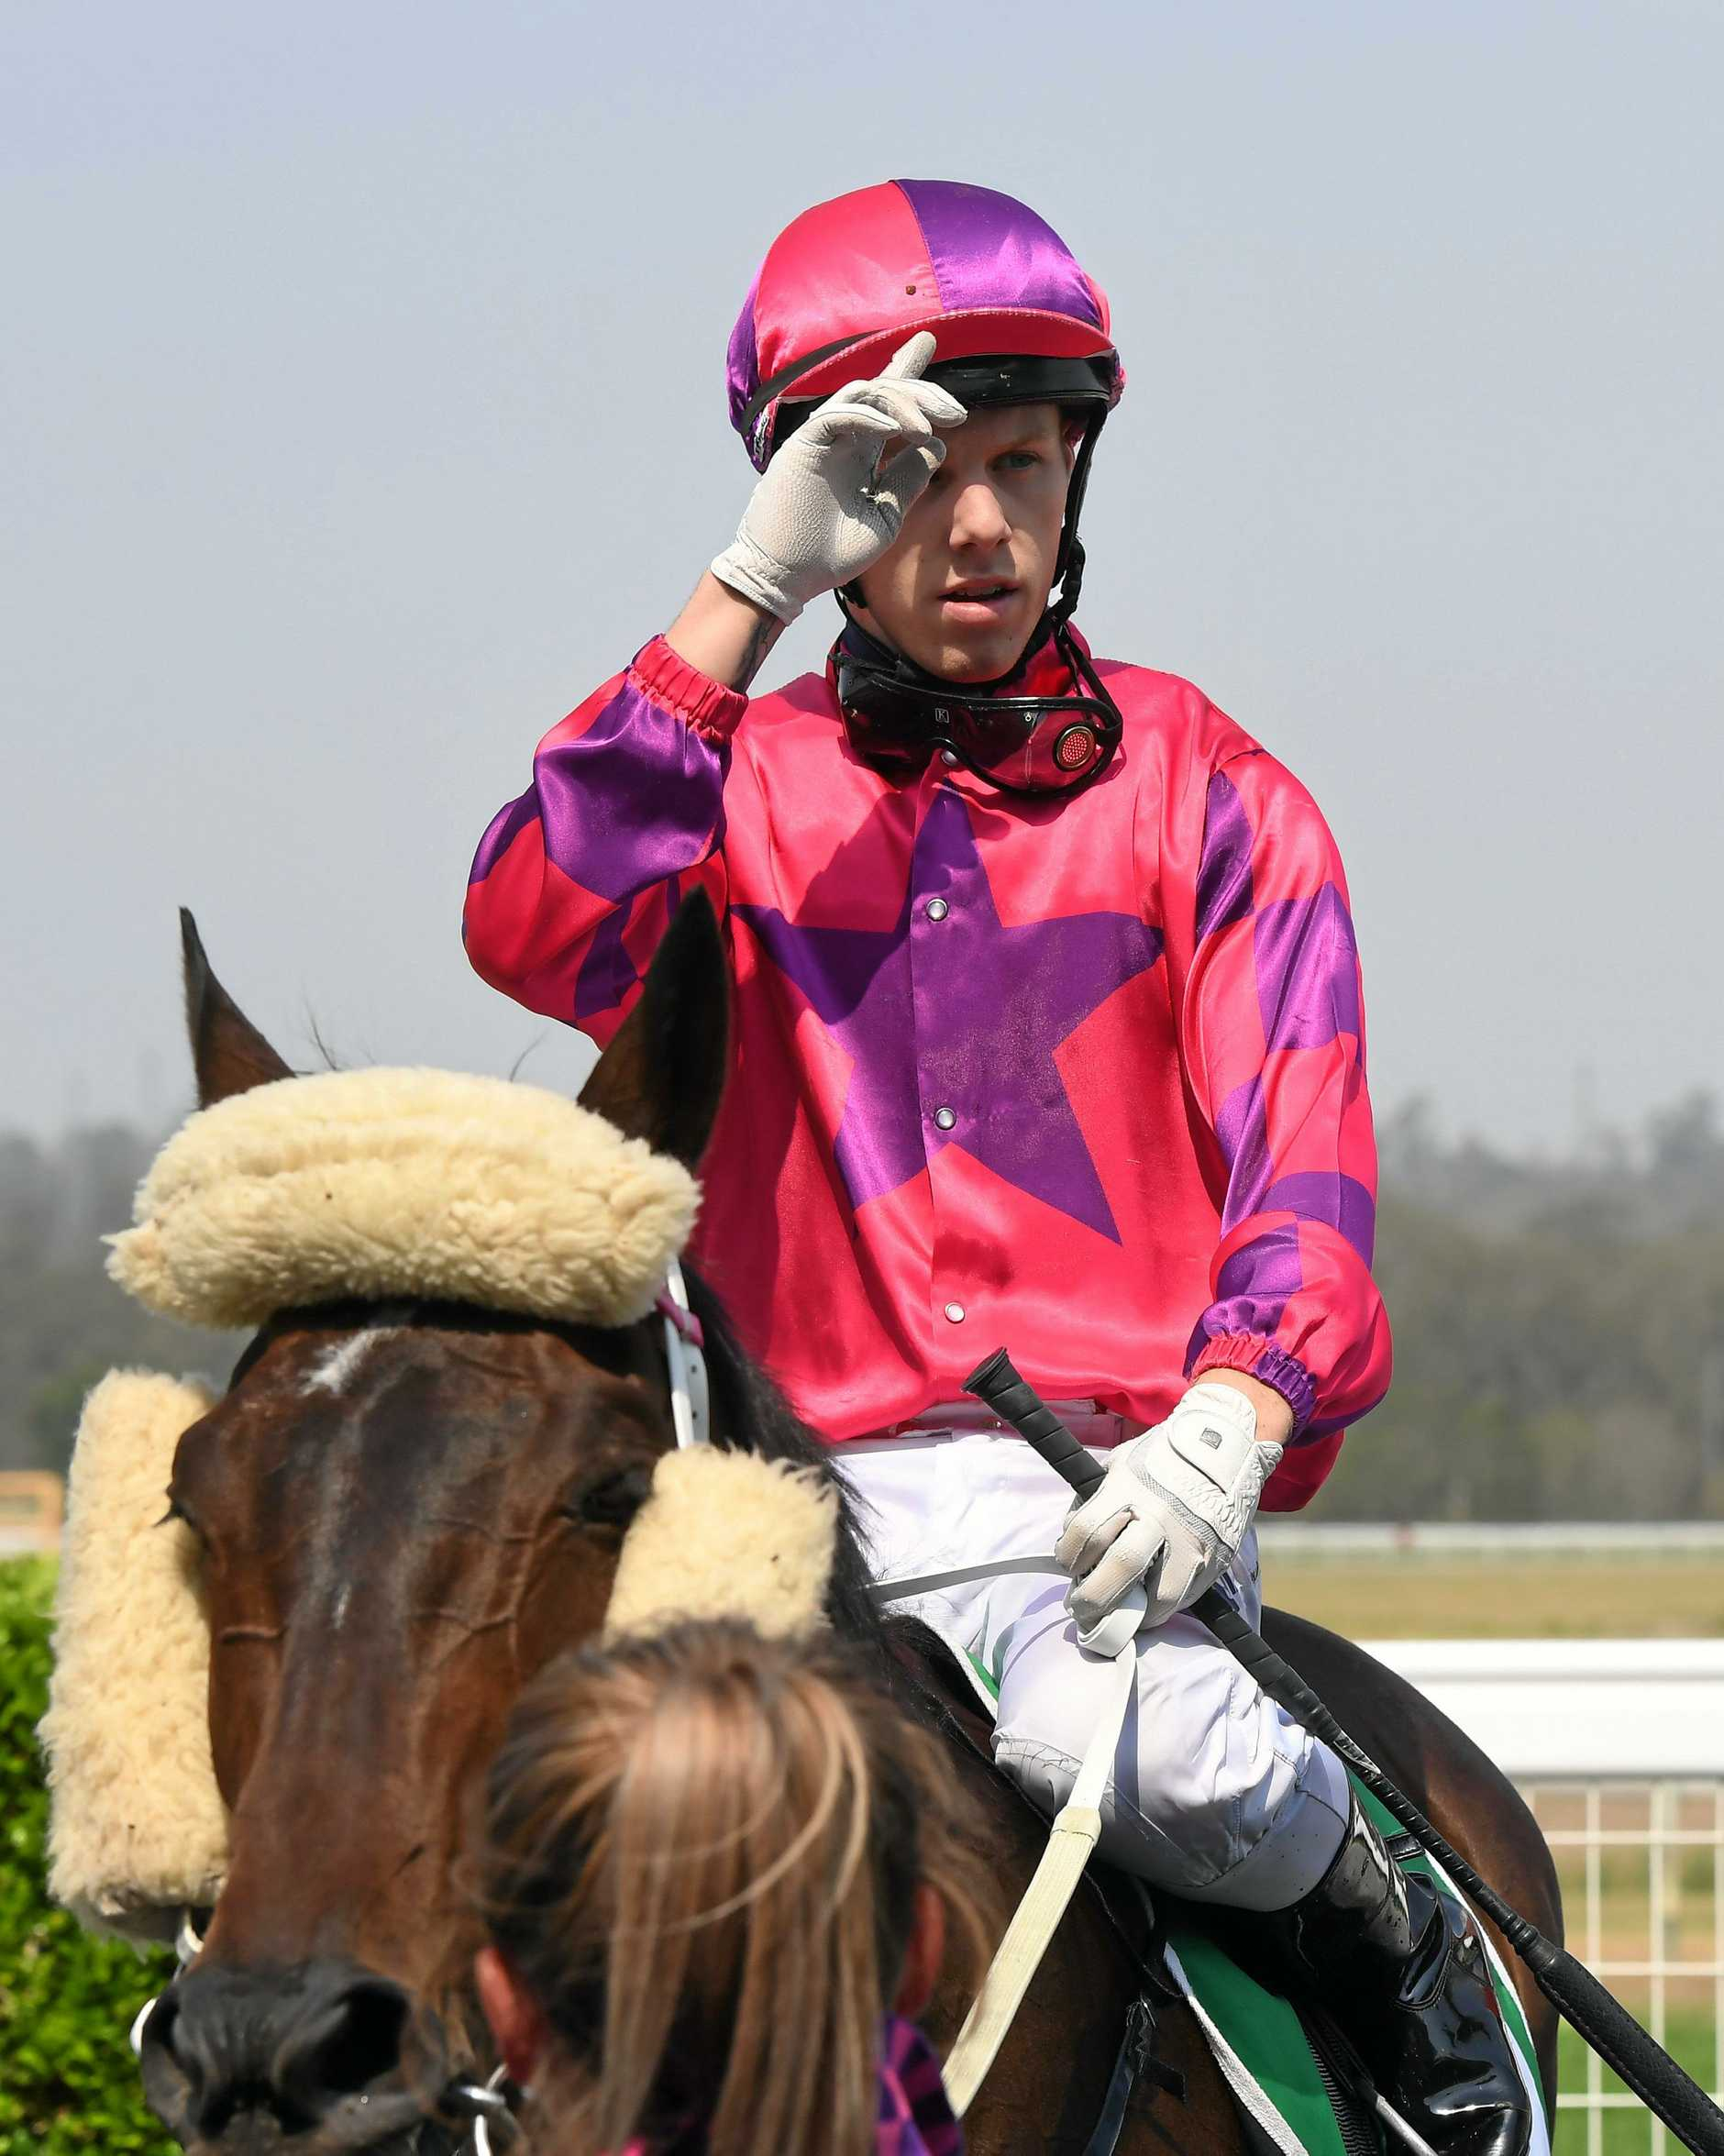 Special Thing ridden by Corey Bayliss won the Sky Racing Ratings Band 0 - 65 race at Ipswich Racetrack on Wednesday.